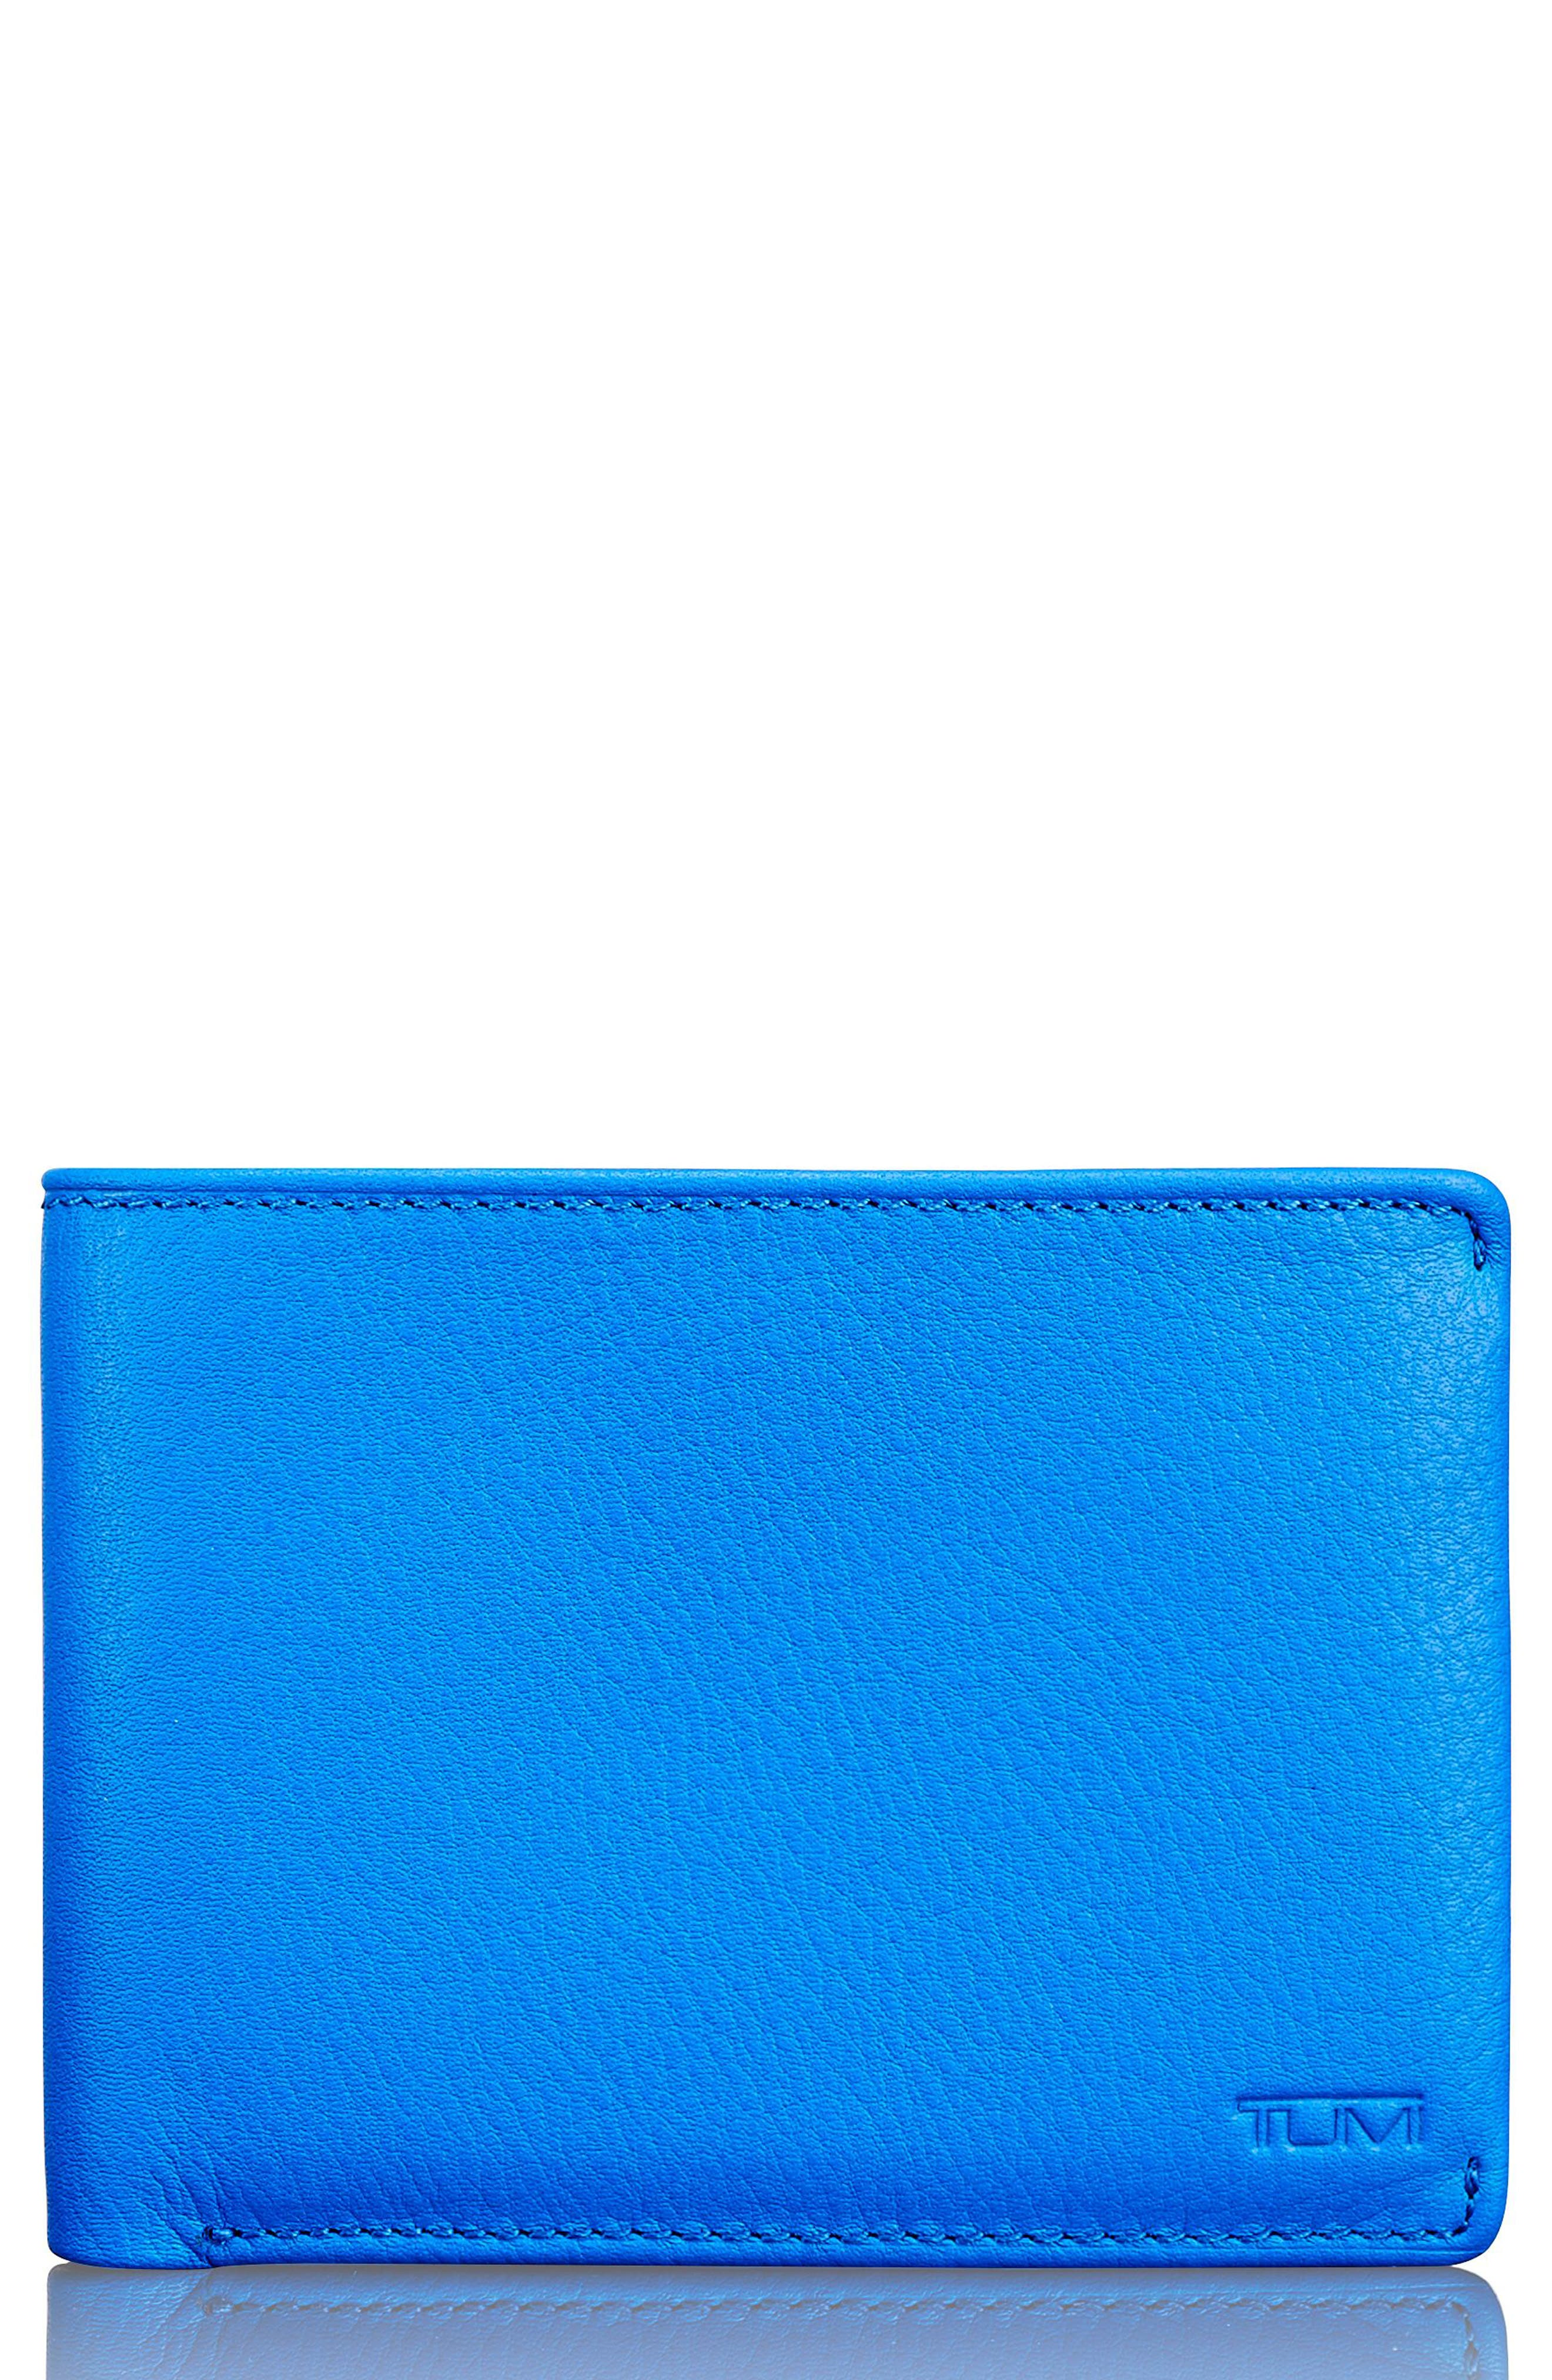 Alternate Image 1 Selected - Tumi Leather Wallet